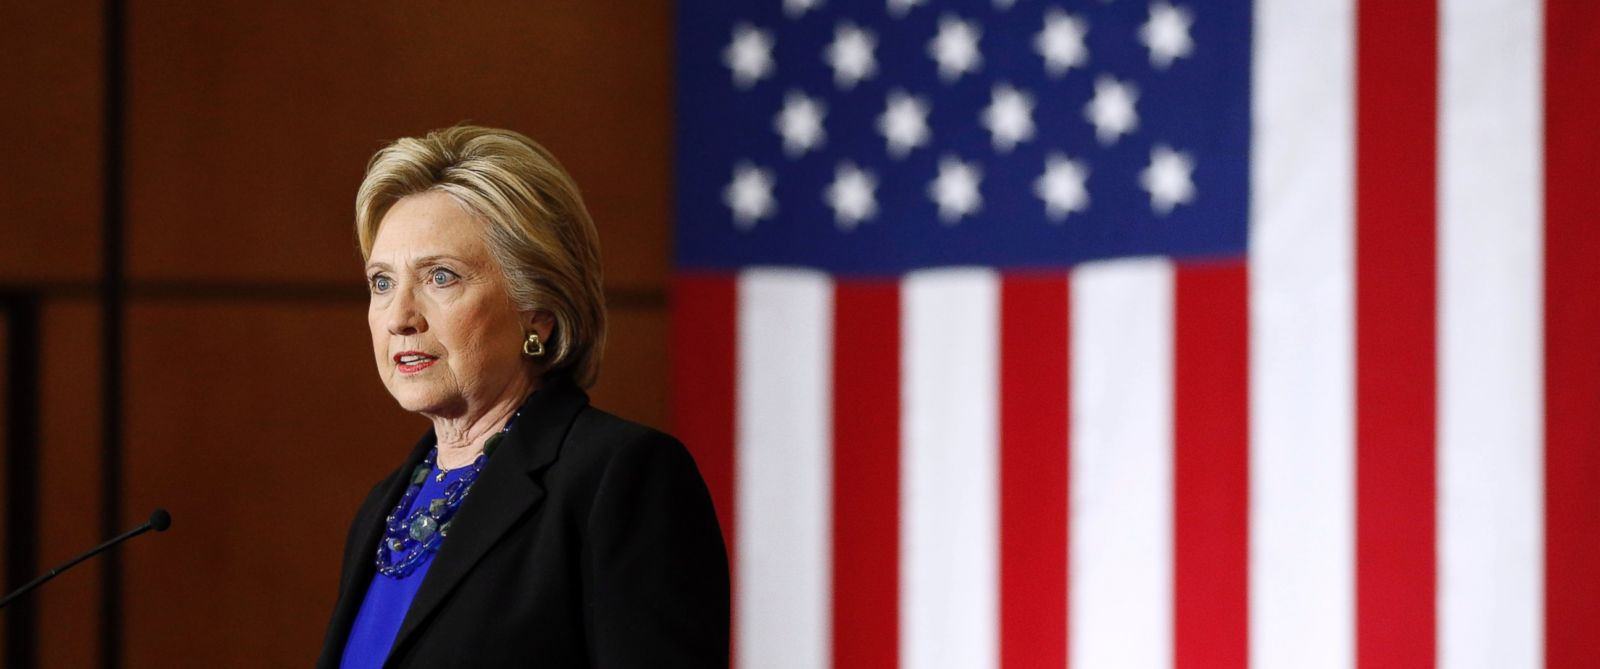 Democratic presidential candidate Hillary Clinton delivers a speech at the University of Wisconsin in Madison, Wis., March 28, 2016.